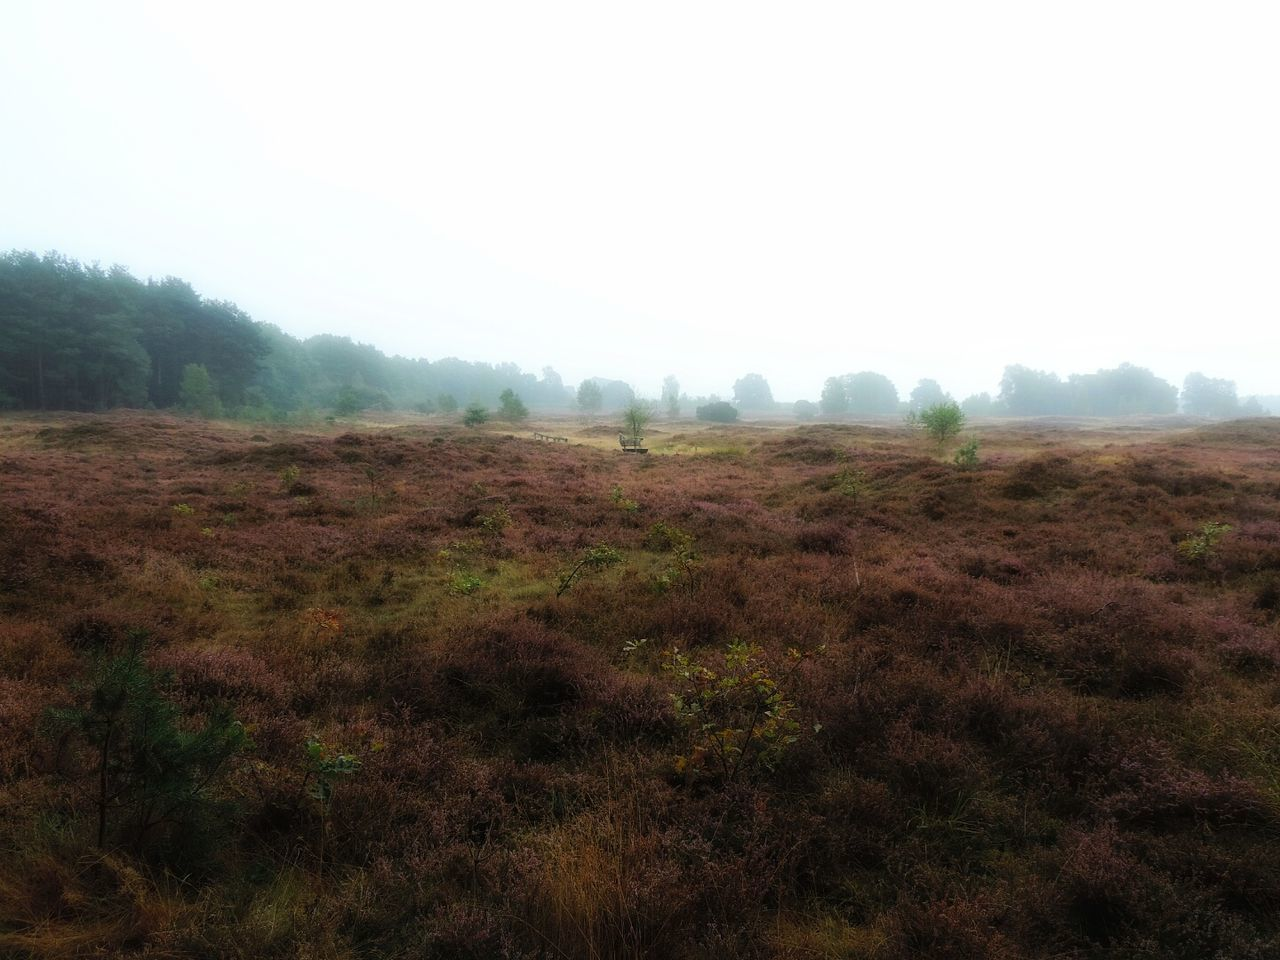 nature, tranquility, beauty in nature, tranquil scene, landscape, field, scenics, no people, day, outdoors, fog, grass, tree, sky